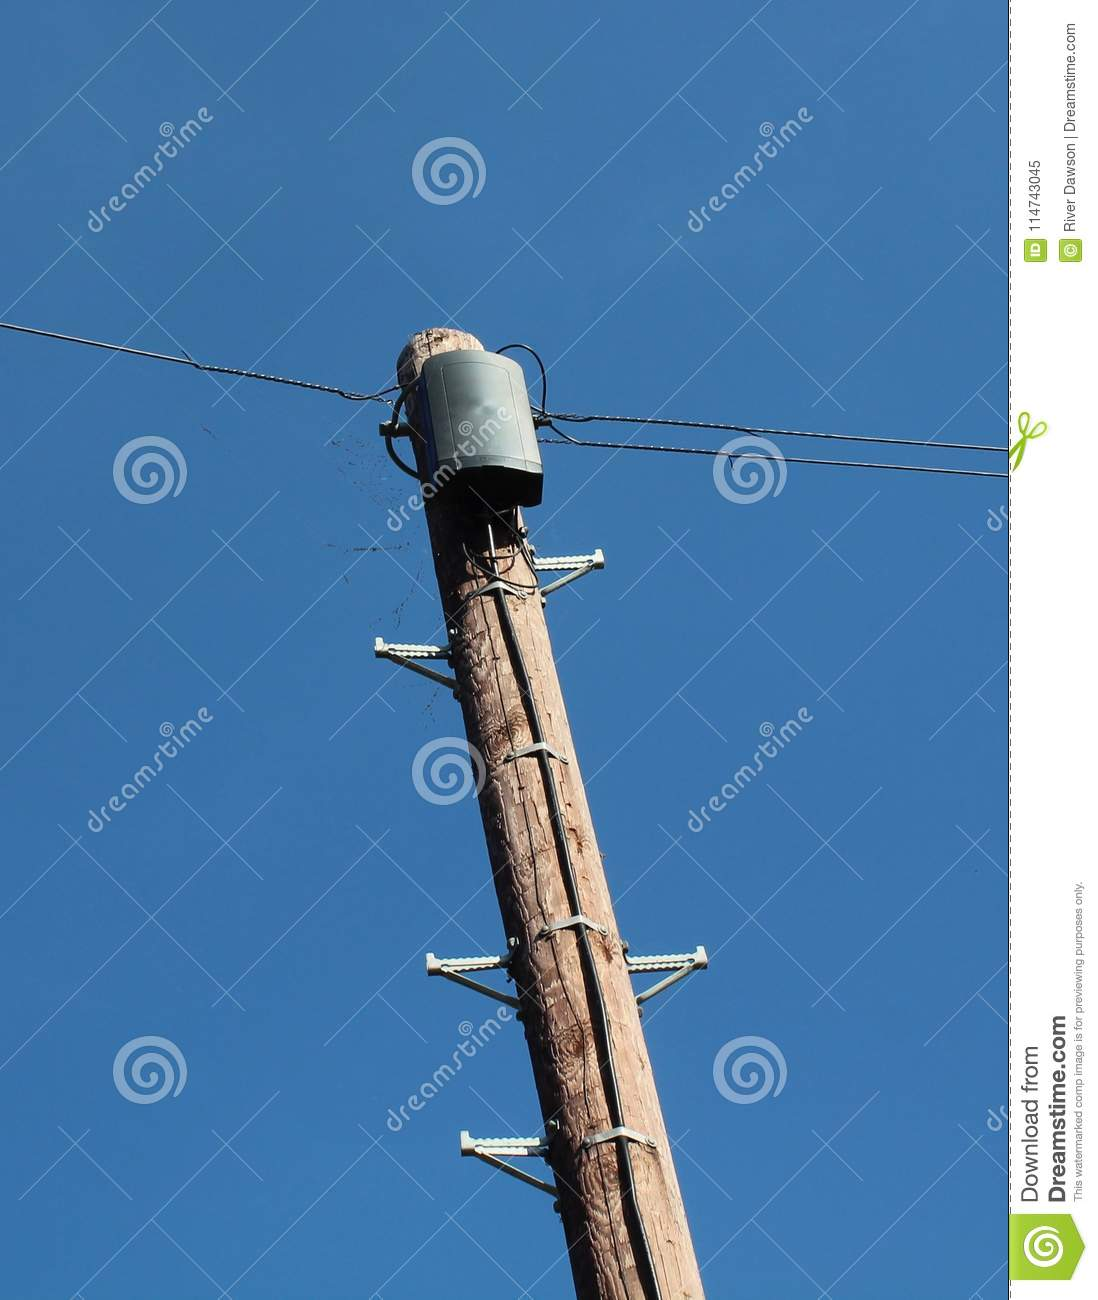 Telephone Pole Against Blue Sky Stock Image - Image of spring, blue